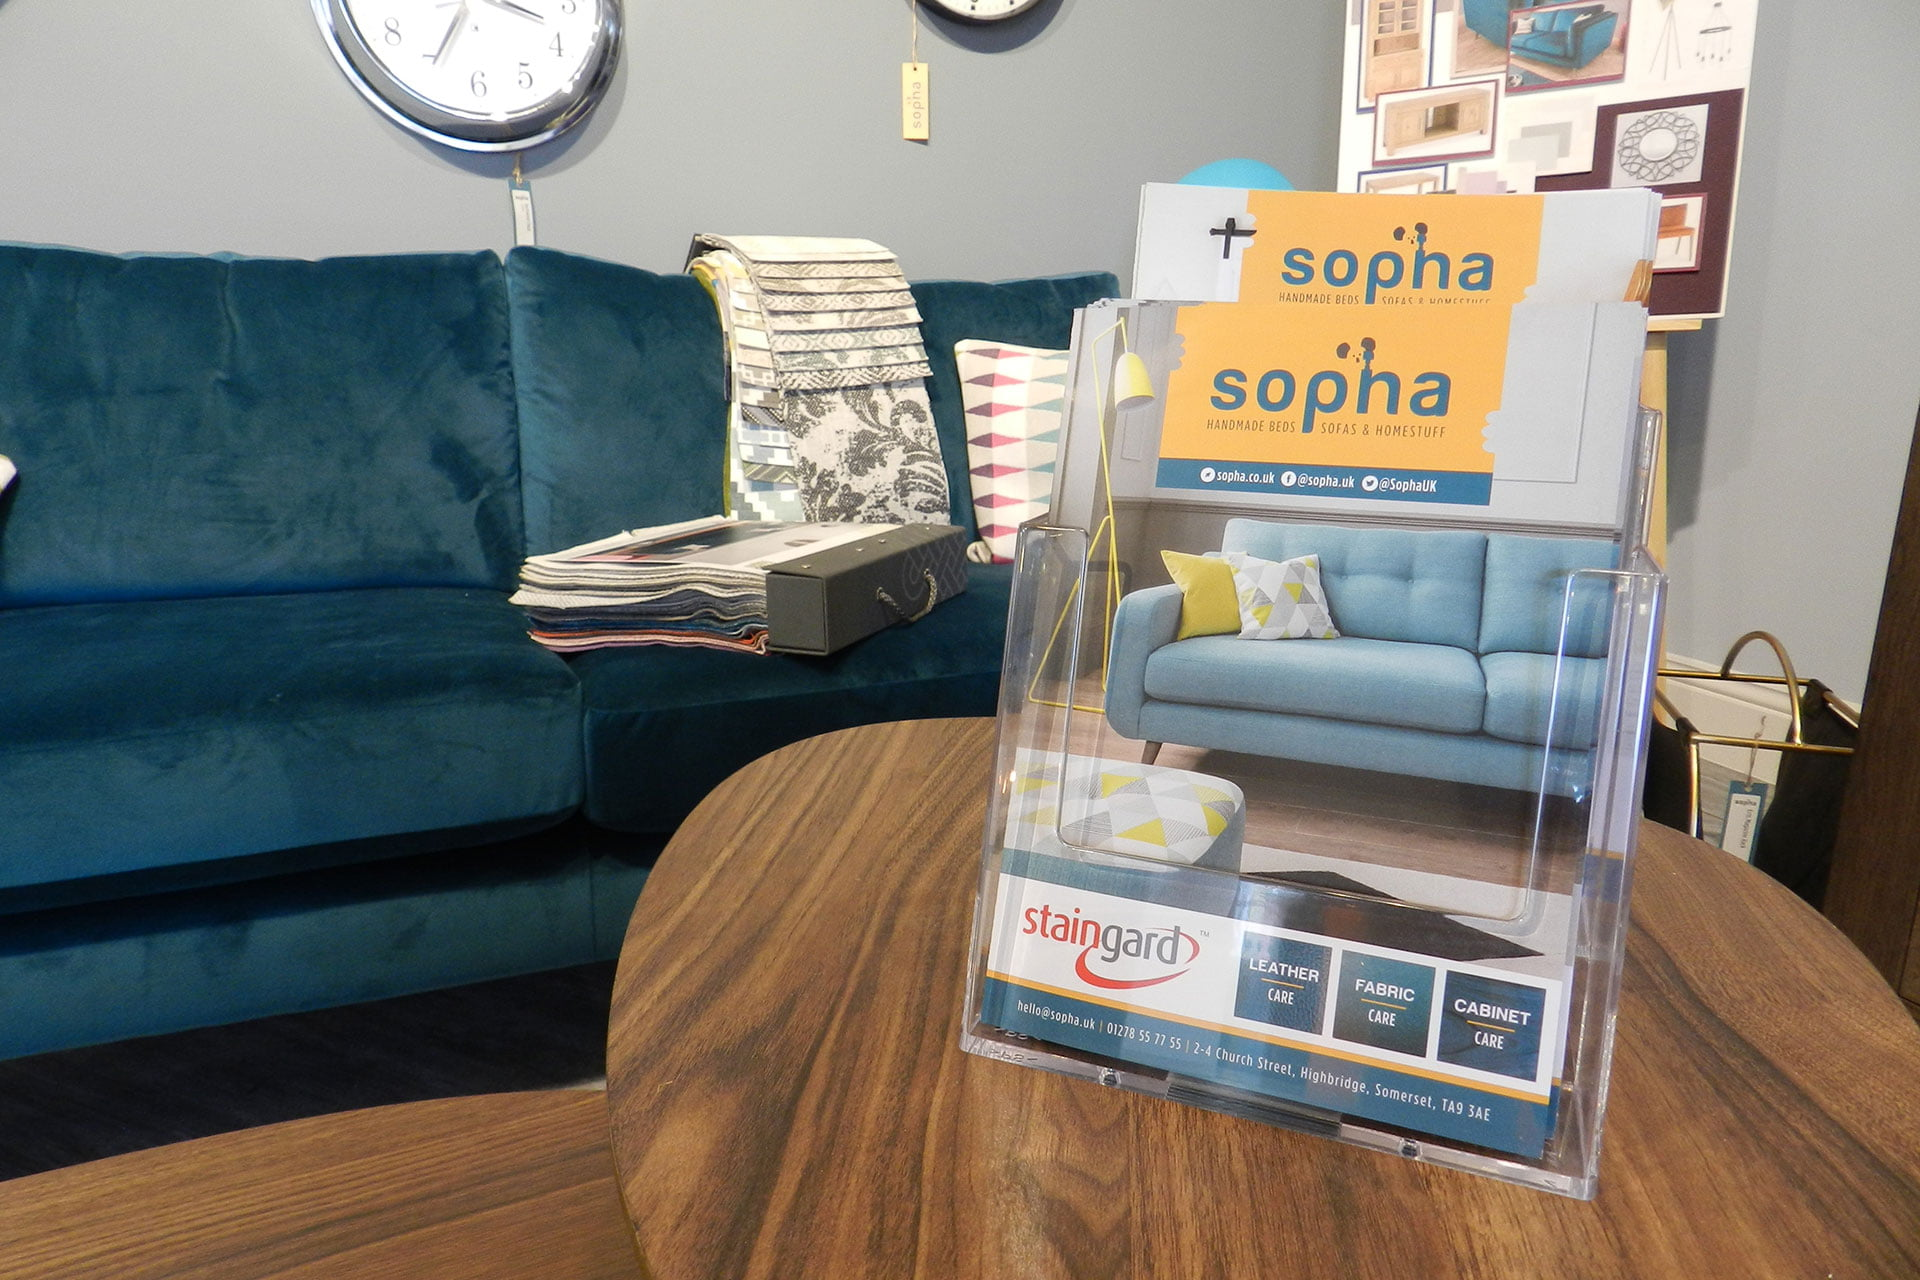 Sopha-furniture-retail-flyer-design-Somerset